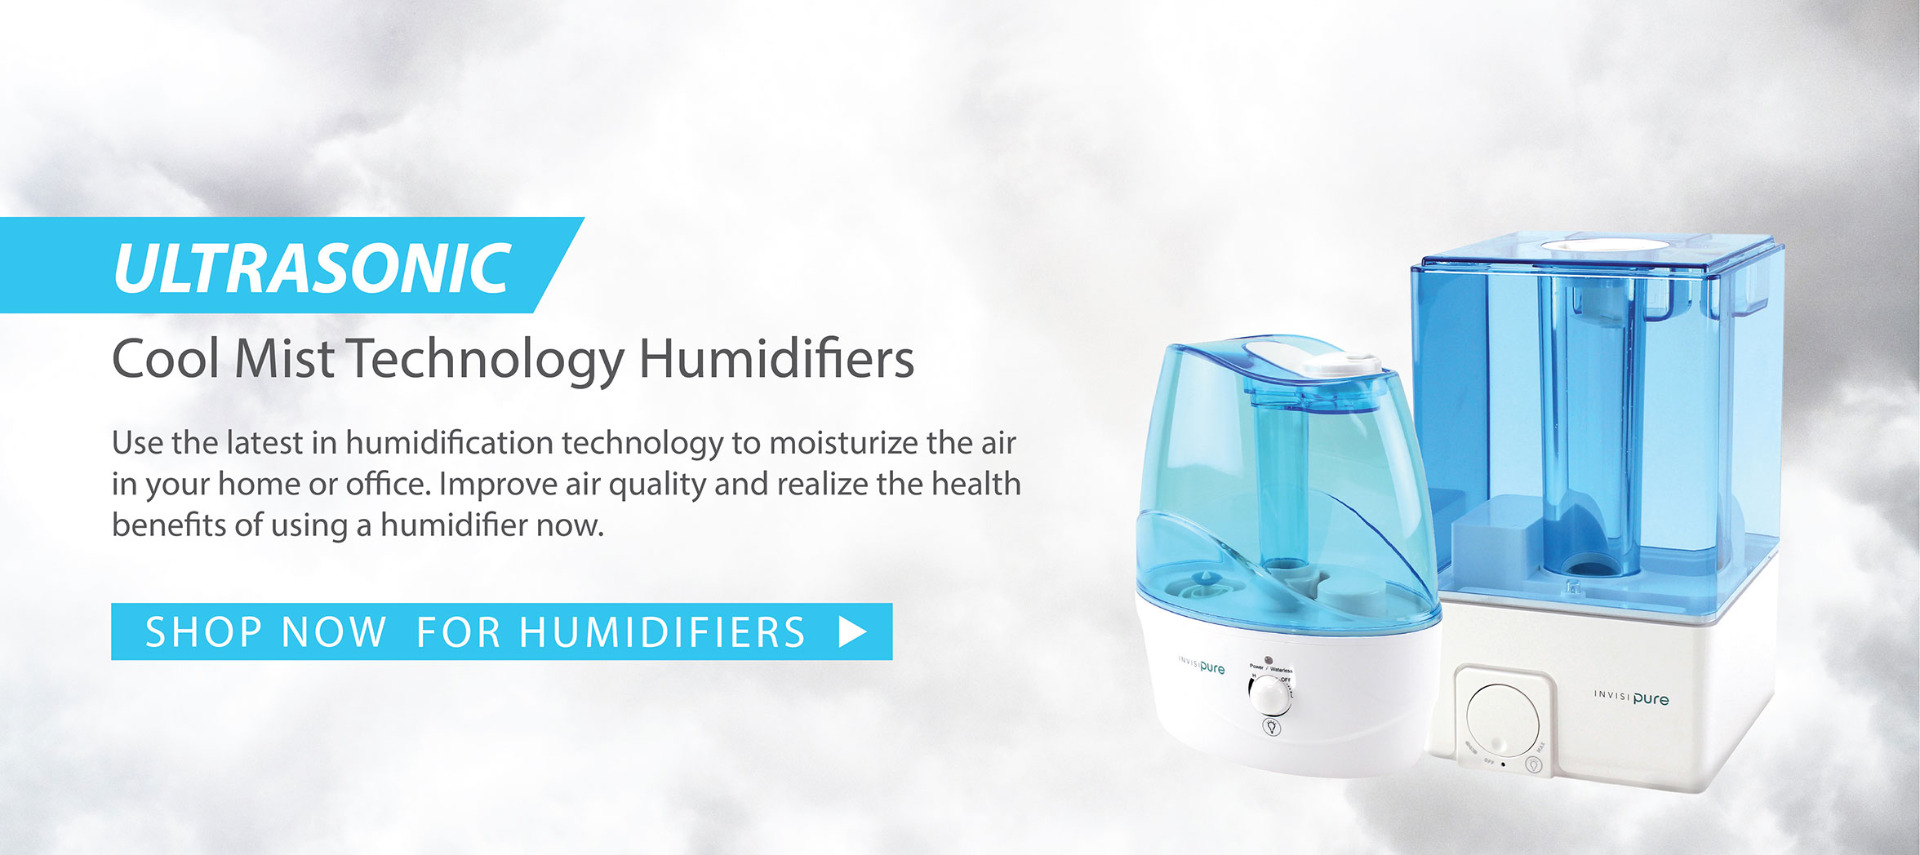 InvisiPure Humidifiers